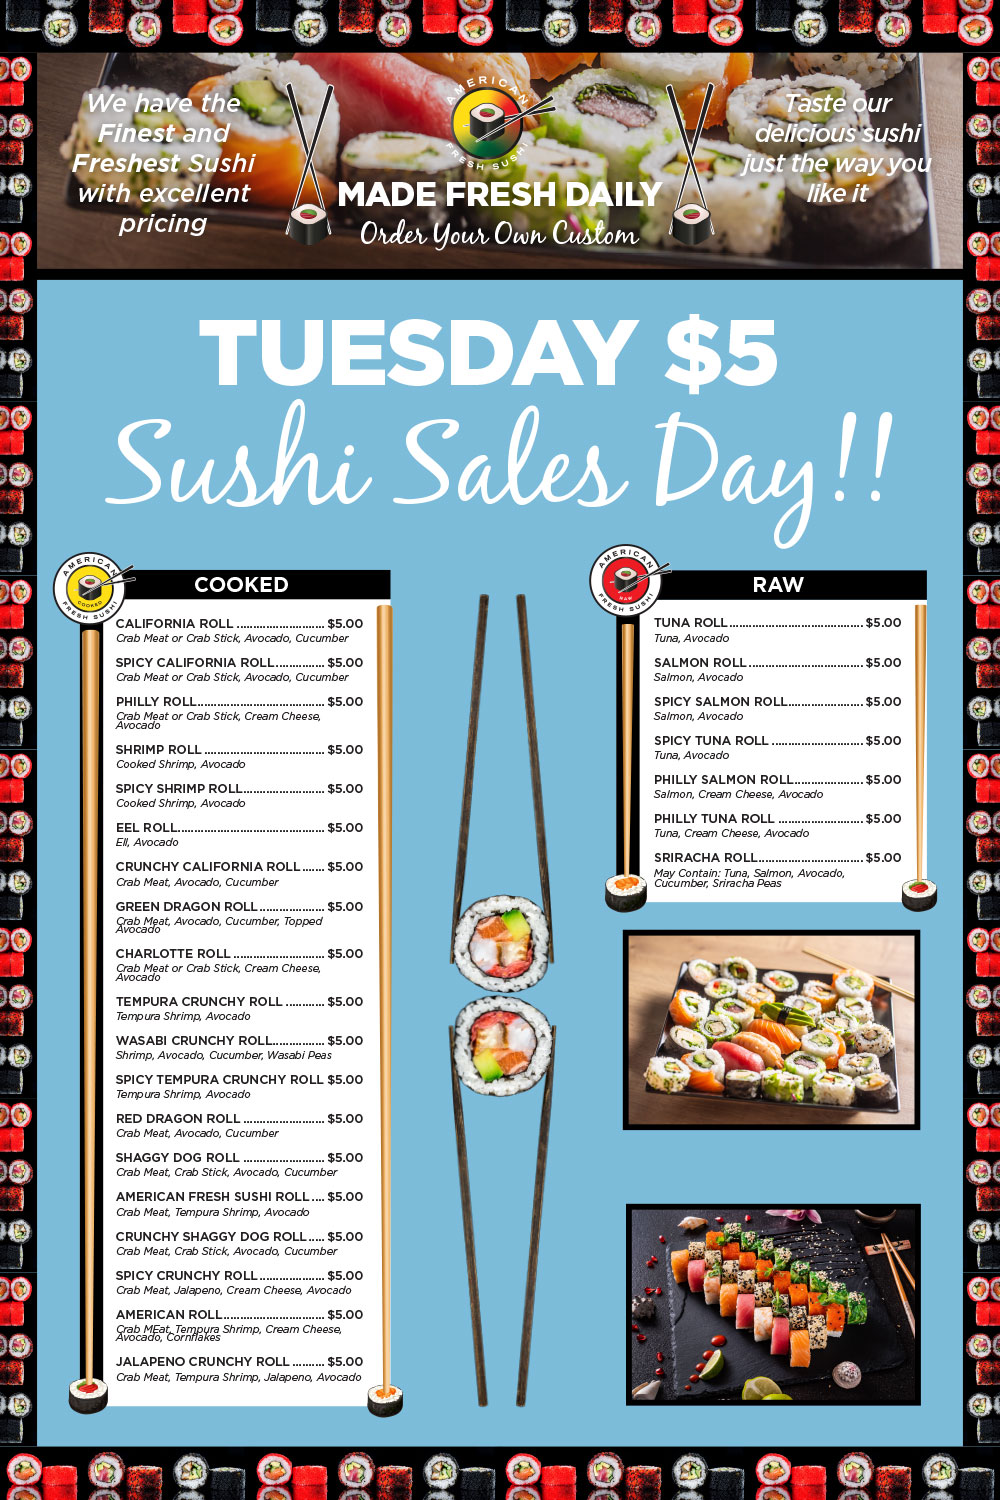 Tuesday $5 sushi sales day